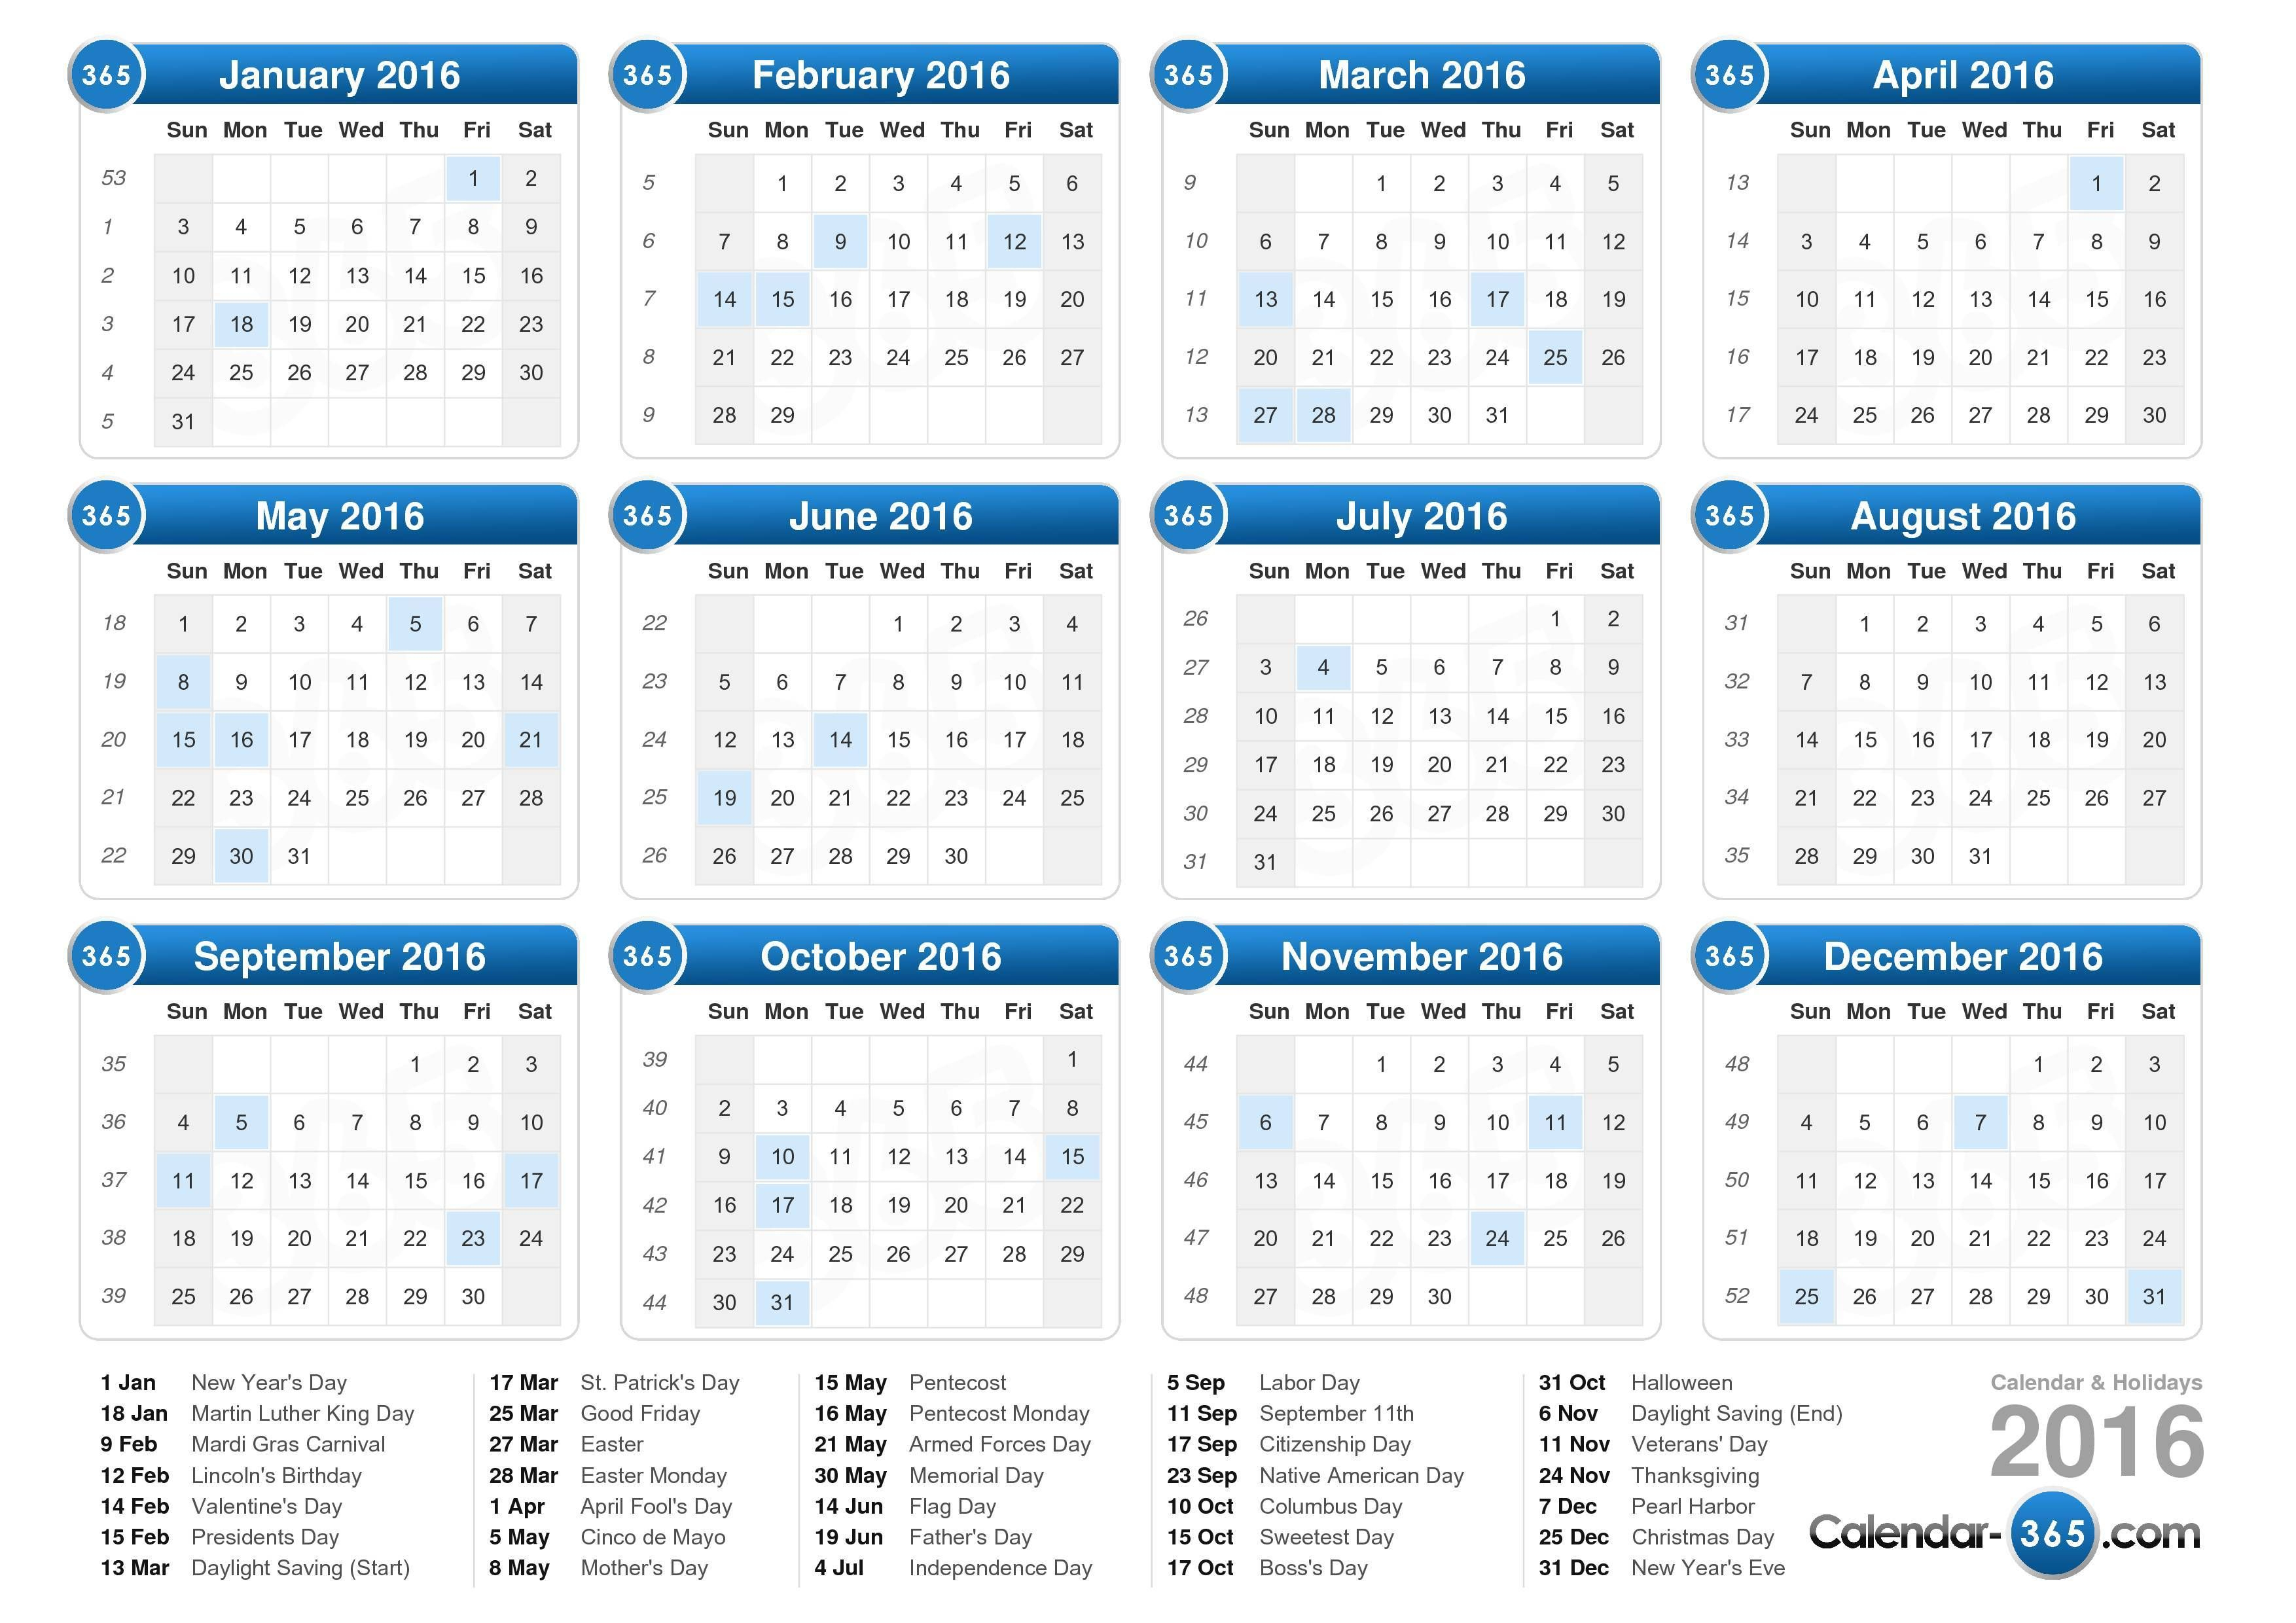 Calendar-365 Best Calendar Generating Site If You Just